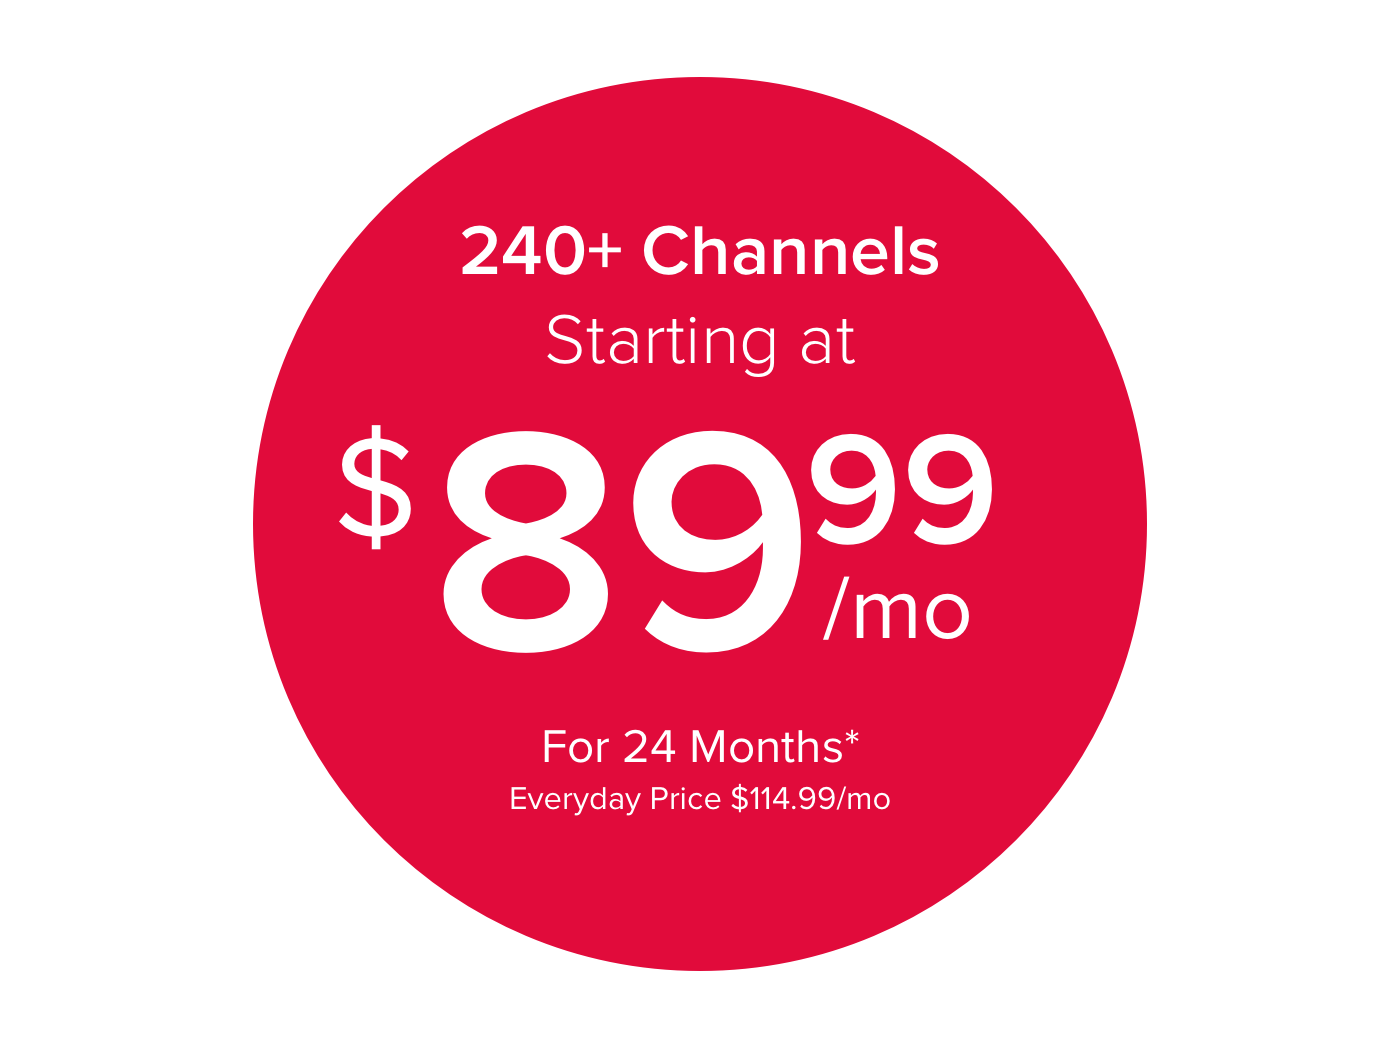 240 plus Channels Starting at $89.99/mo for 24 Months*  Everyday price $114.99/mo